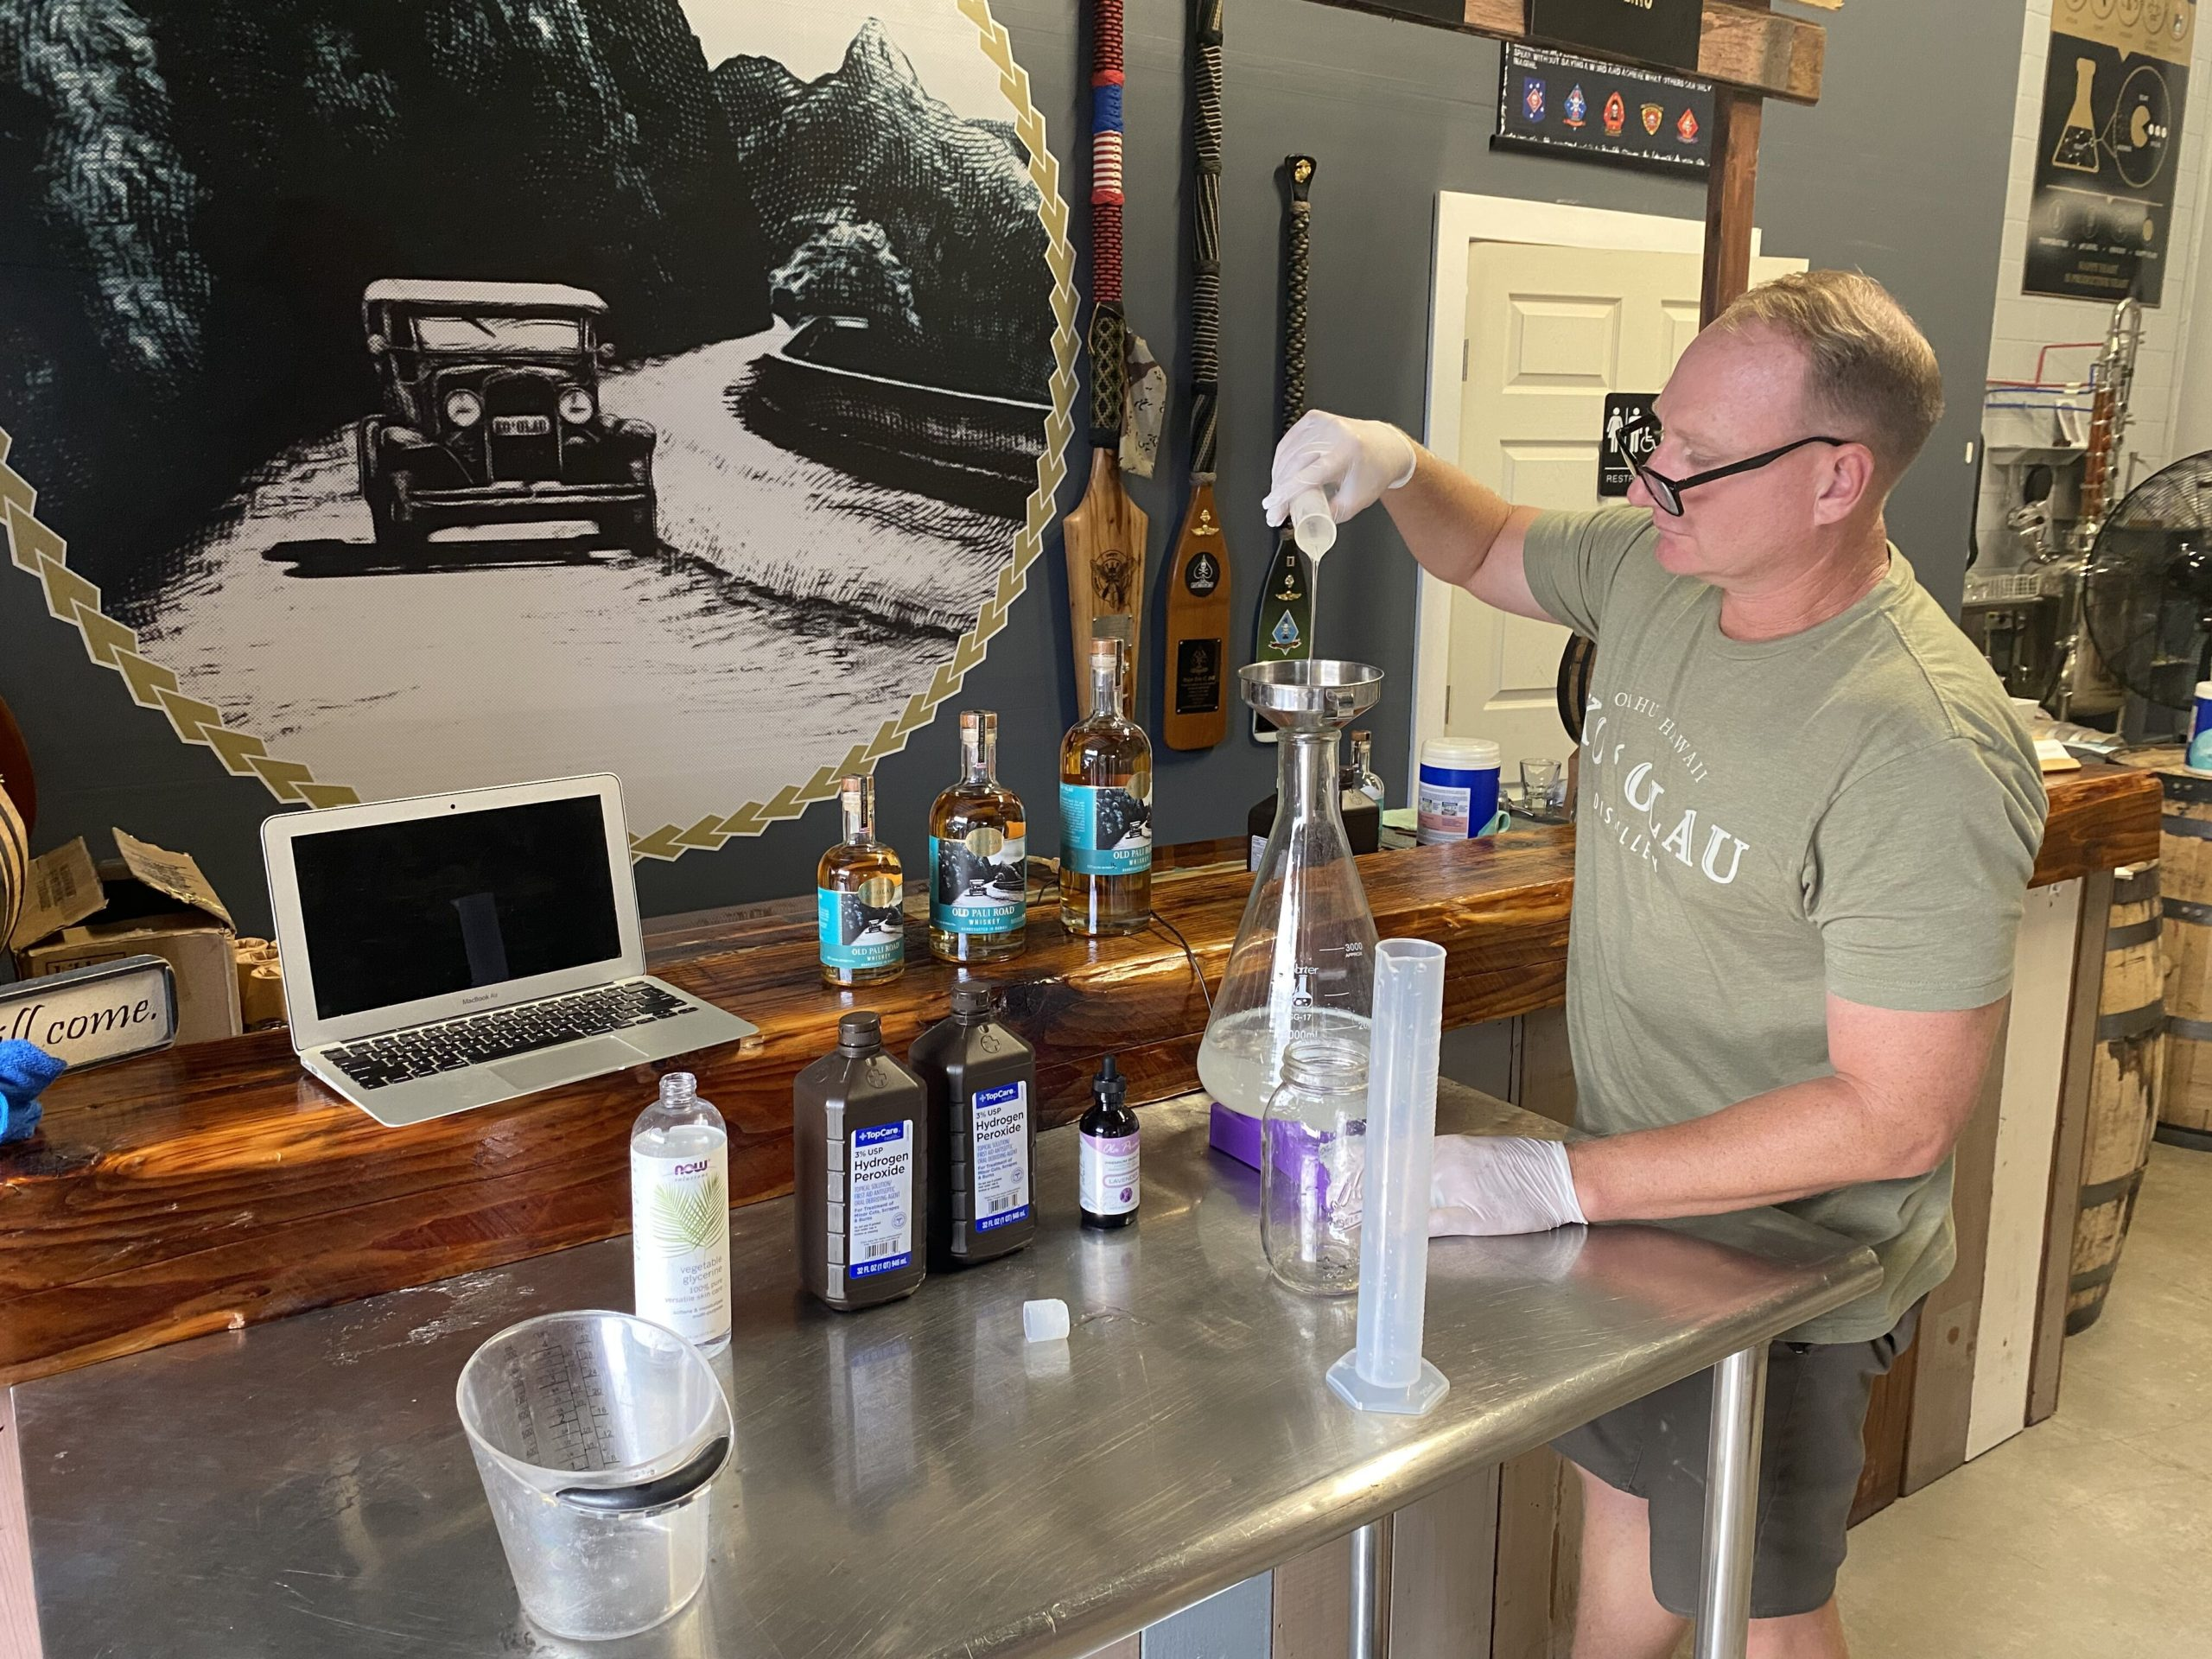 Amazon cuts off Hawaii from hand sanitizer: Whiskey Distillery and former US Marine takes action